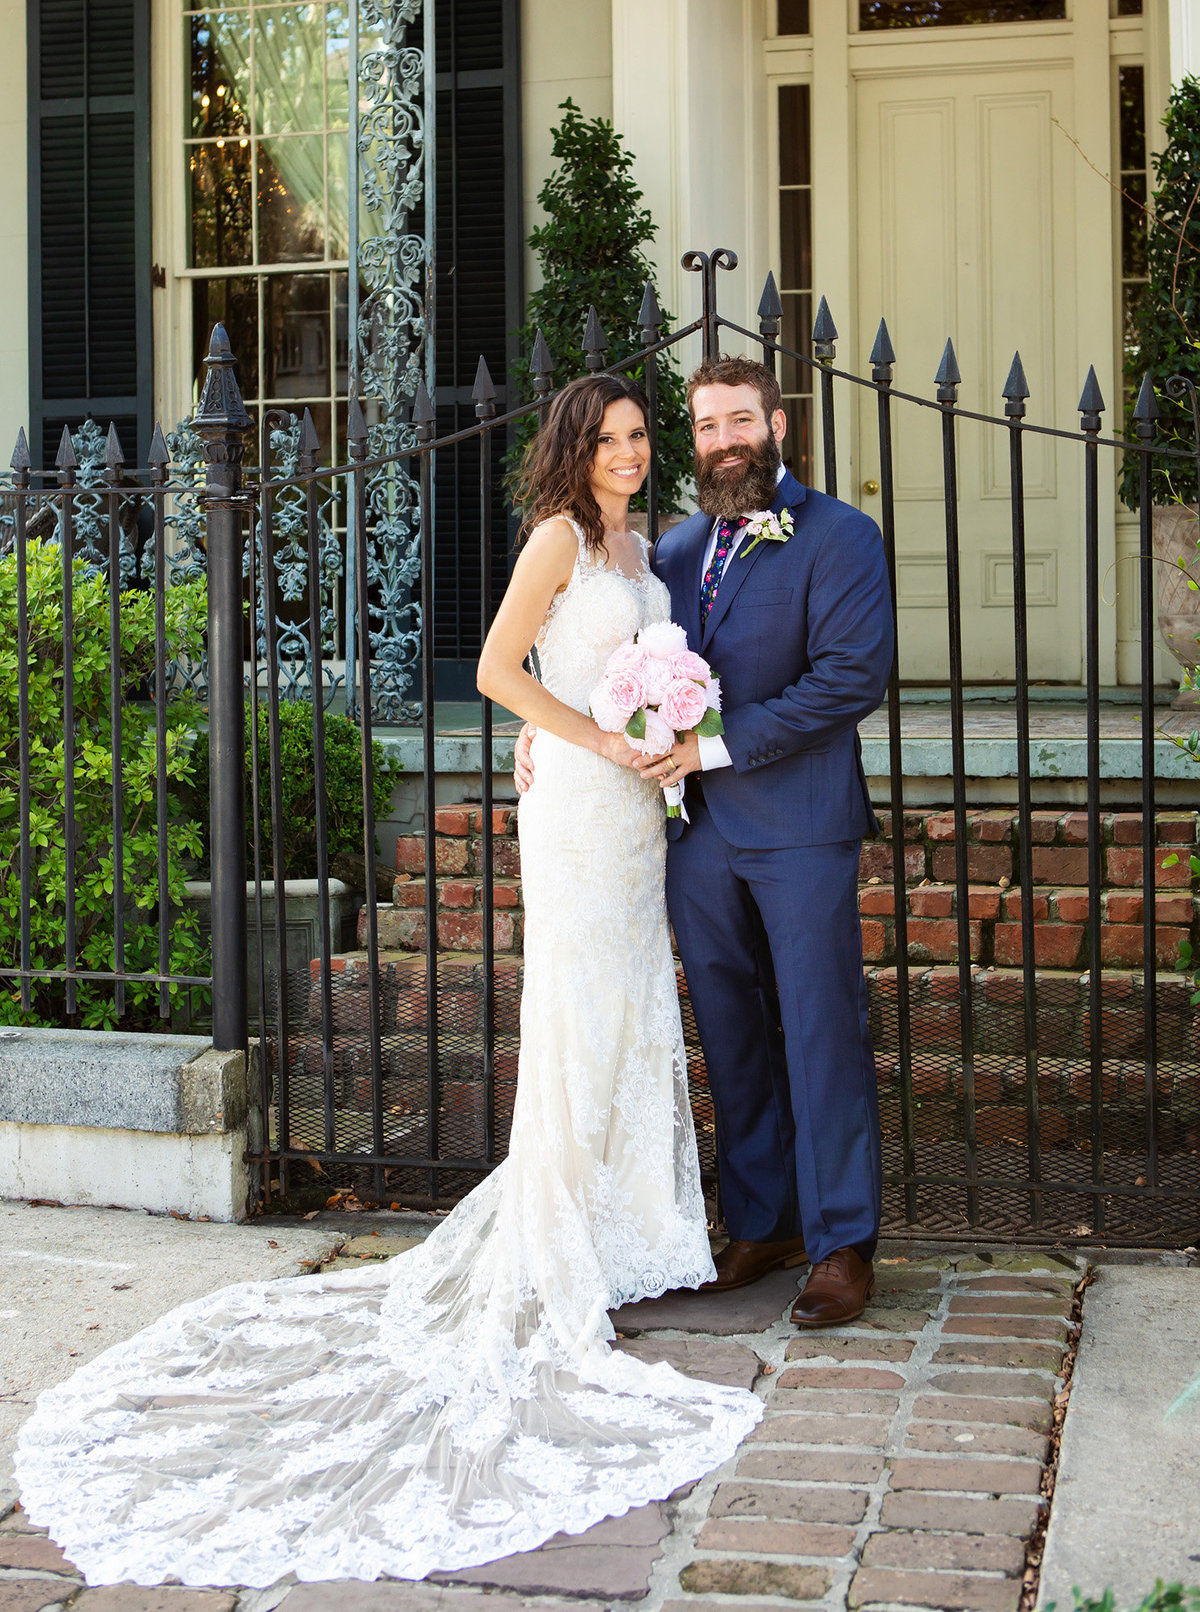 NOLA-wedding-by-Becky-Cooper-Photography